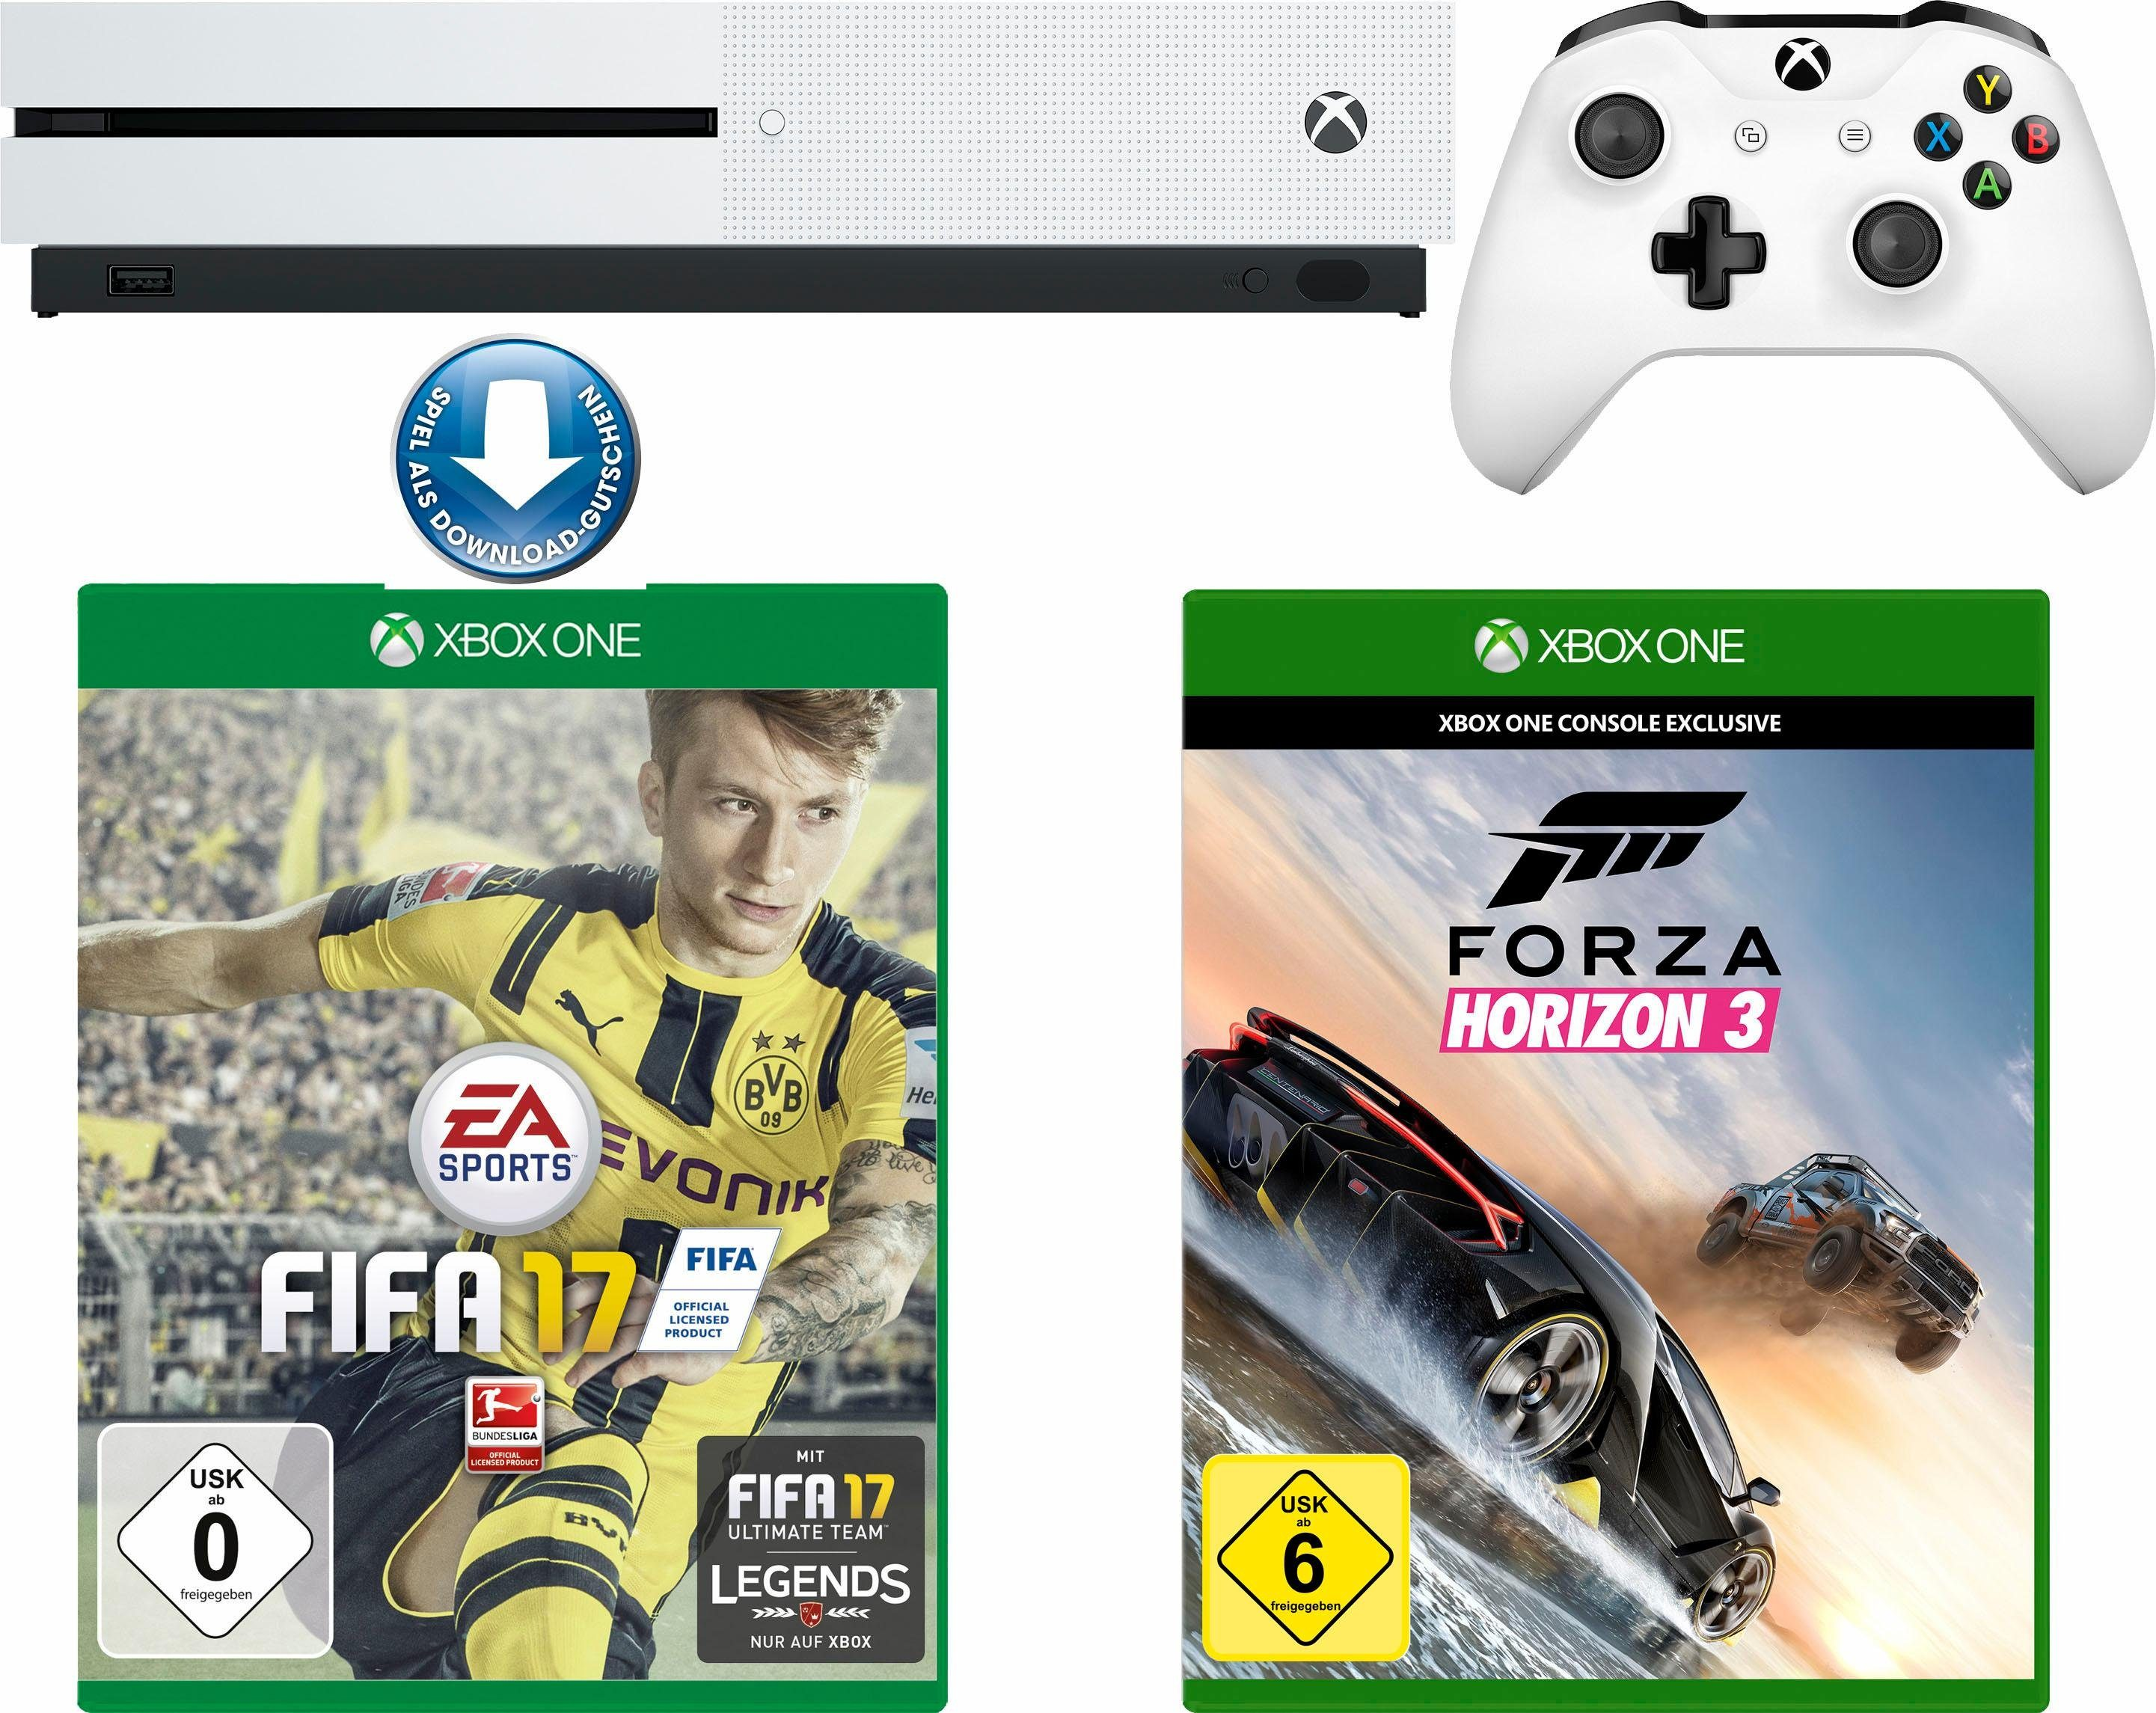 Xbox One S 500GB + Fifa 17 (DLC) + Forza Horizon 3, 4K Ultra HD